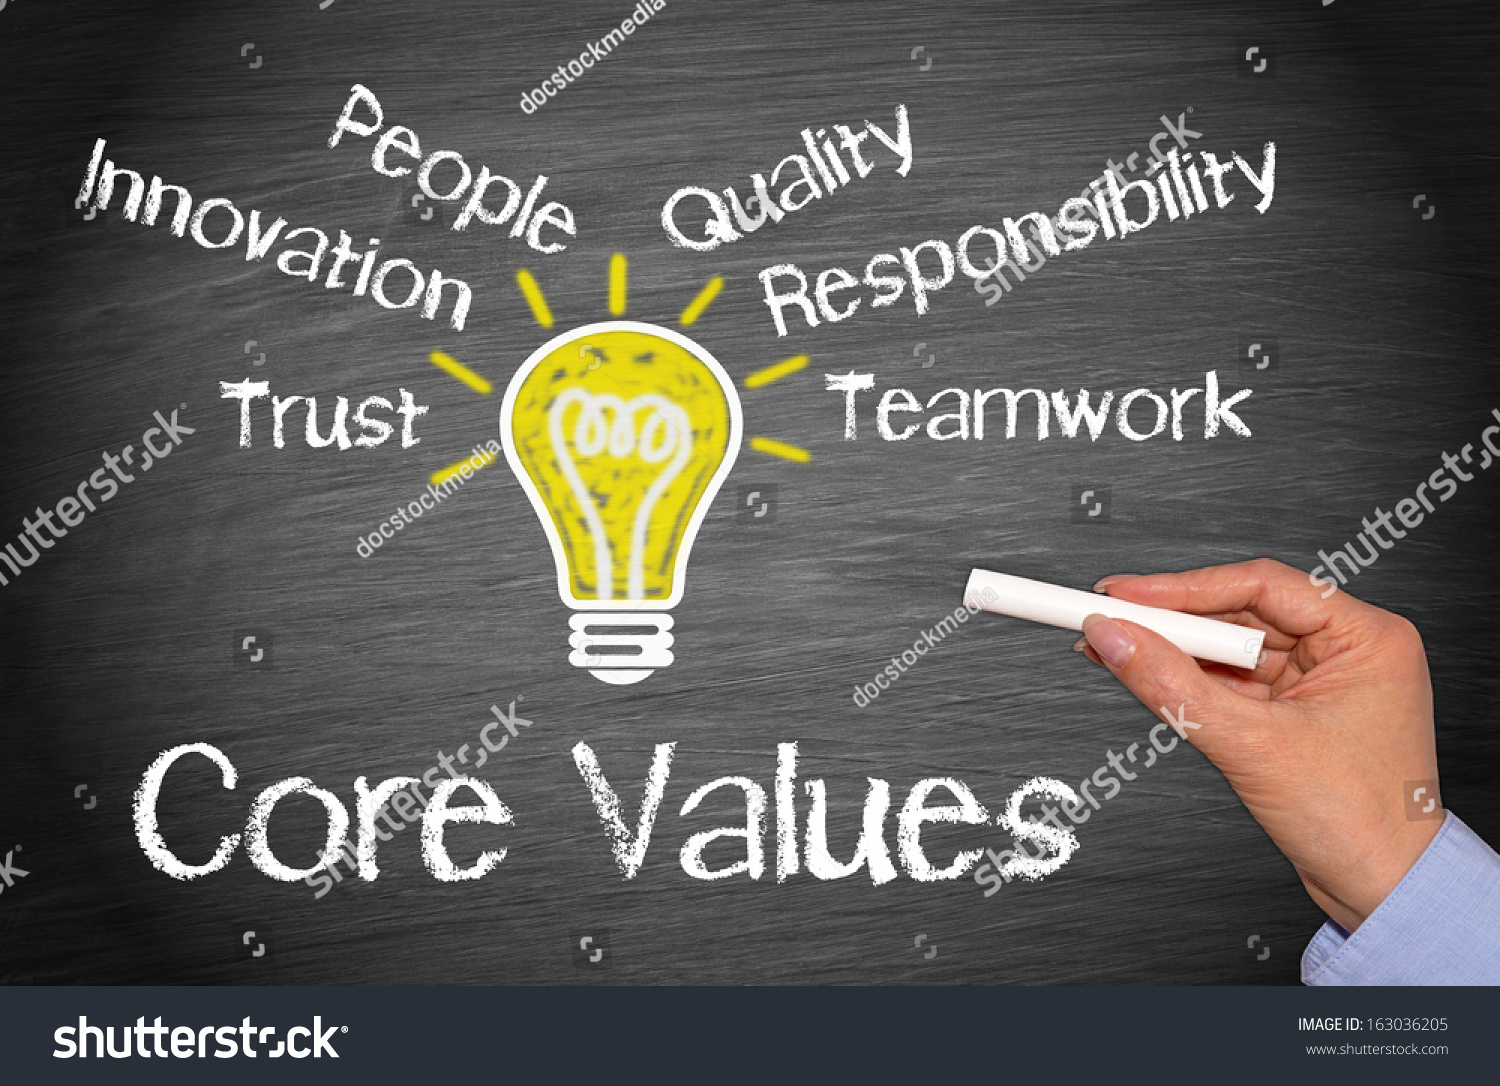 alcoa s core values Alcoa's core values in business are integrity, safety and health, quality of  treatment of people, accountability, and profitability alcoa's ethical work climate  is.